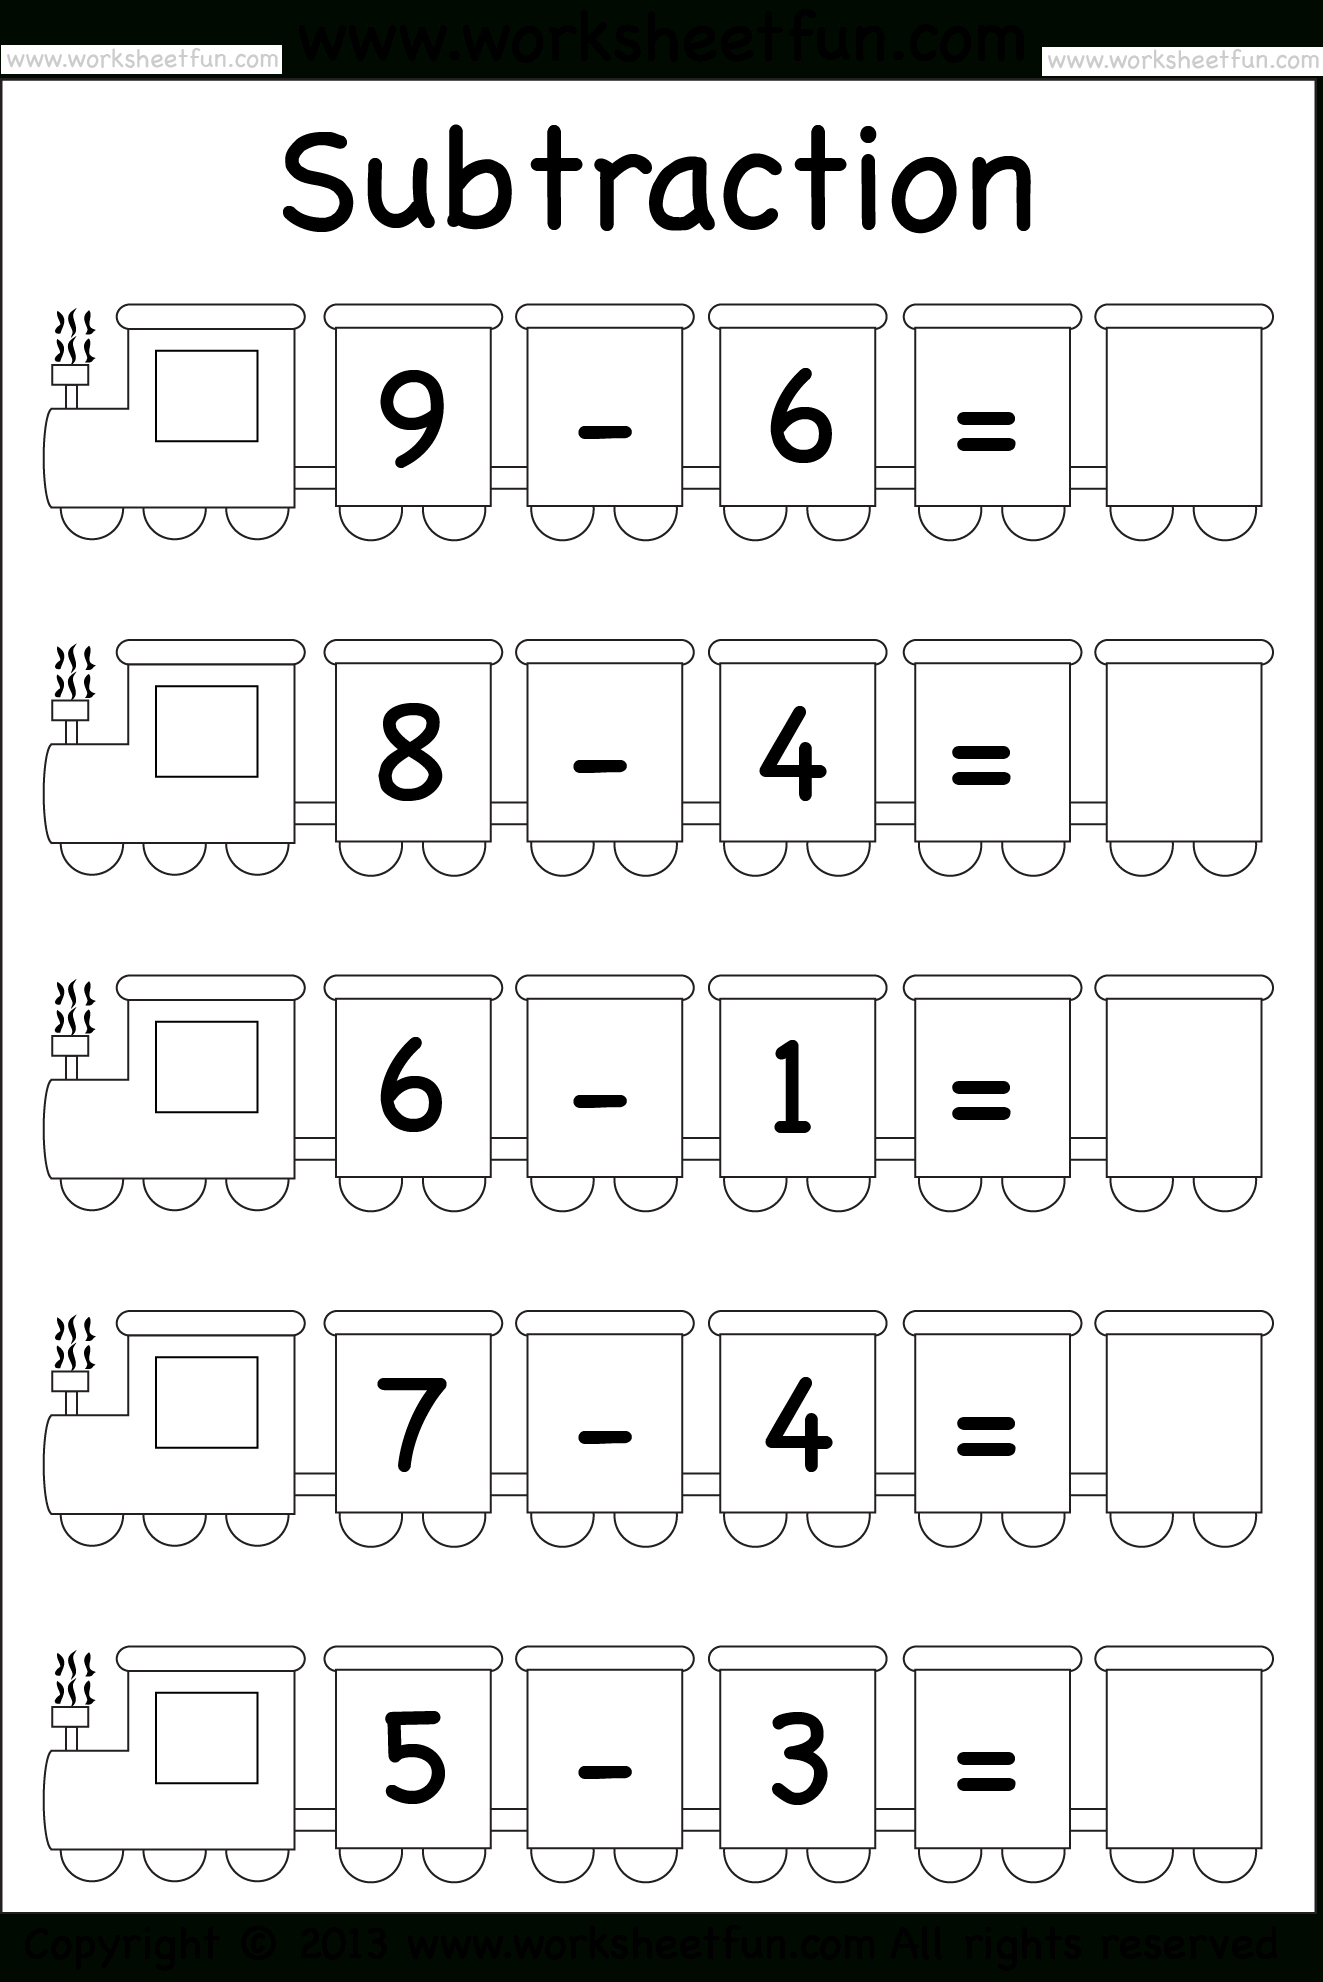 Beginner Subtraction – 5 Kindergarten Subtraction Worksheets / Free - Free Printable Subtraction Worksheets